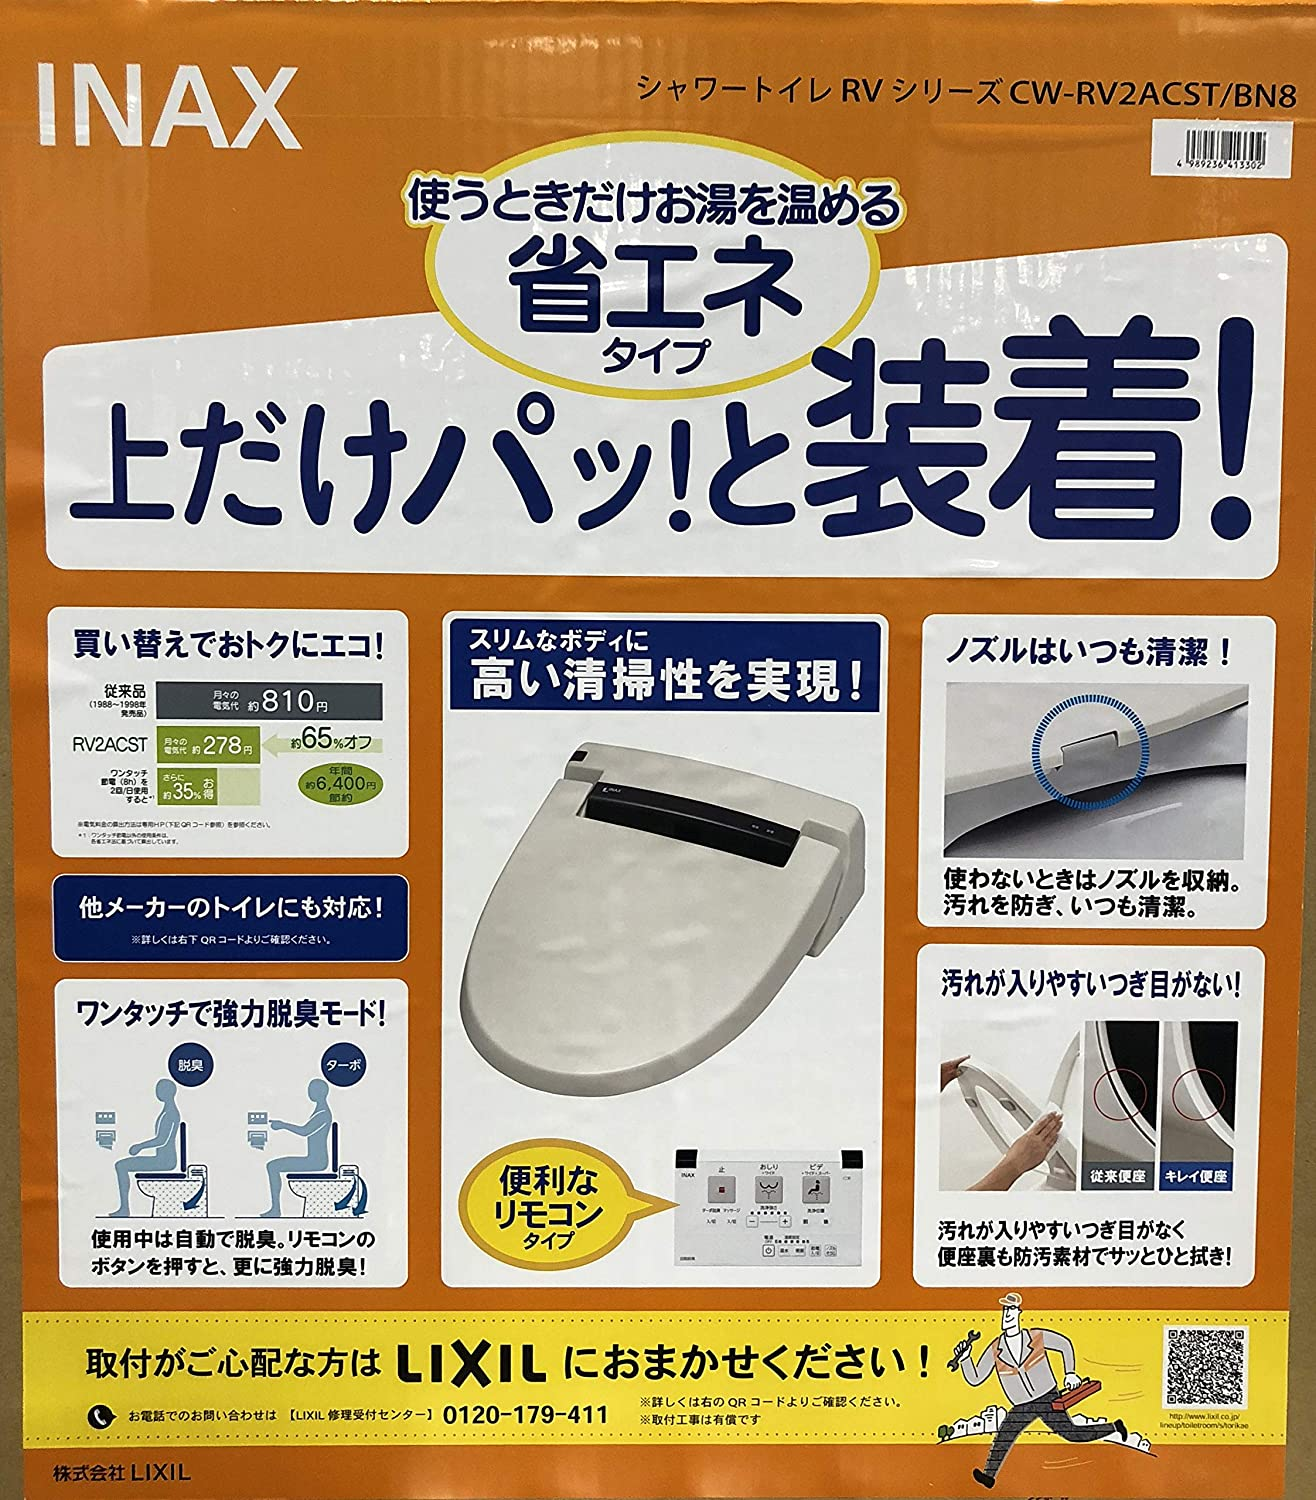 LIXIL INAX シャワートイレ ウォッシュレット CW-RV2ACST/BN8